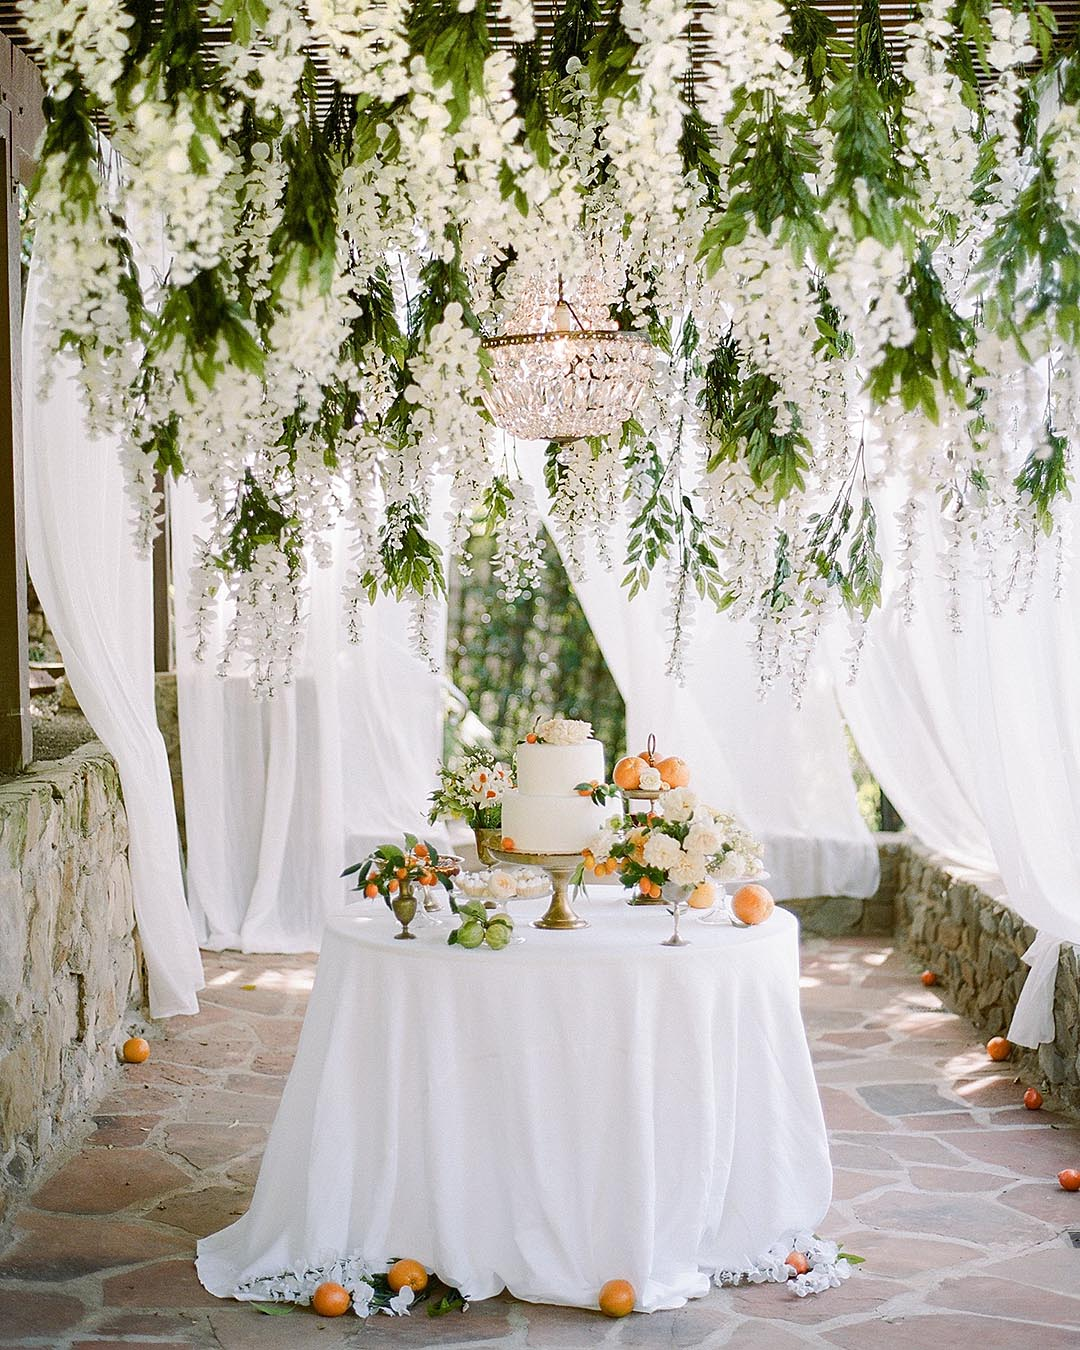 wedding trends hanging flower decor greenery and white decor